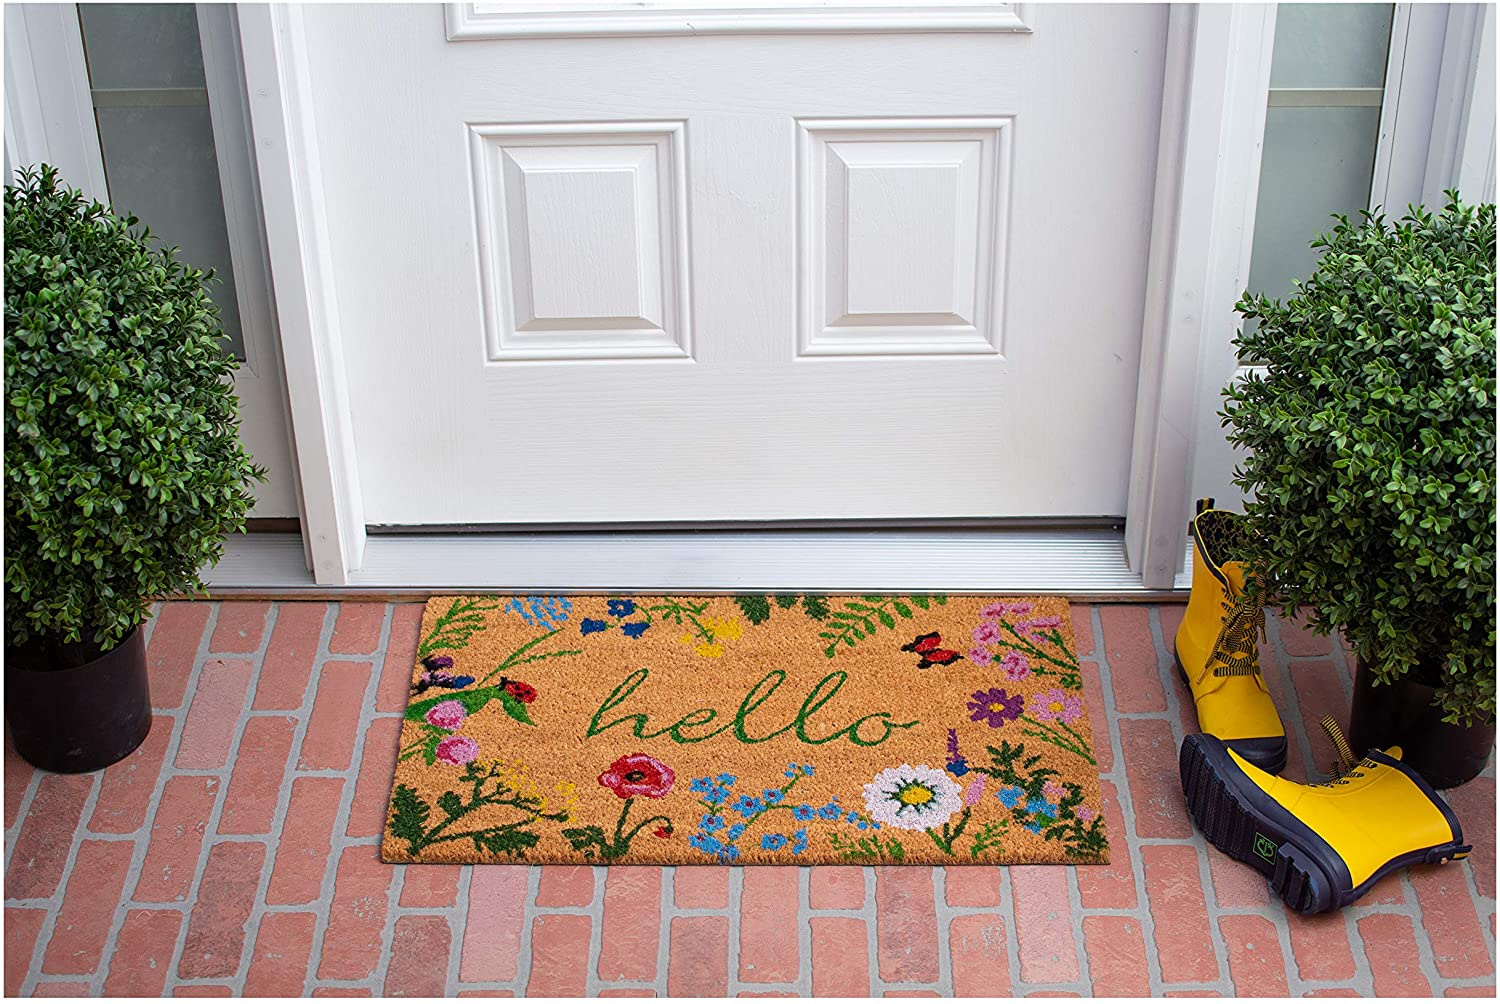 """A floral print doormat with script reading """"hello"""" on a brick patio in front of a white door"""